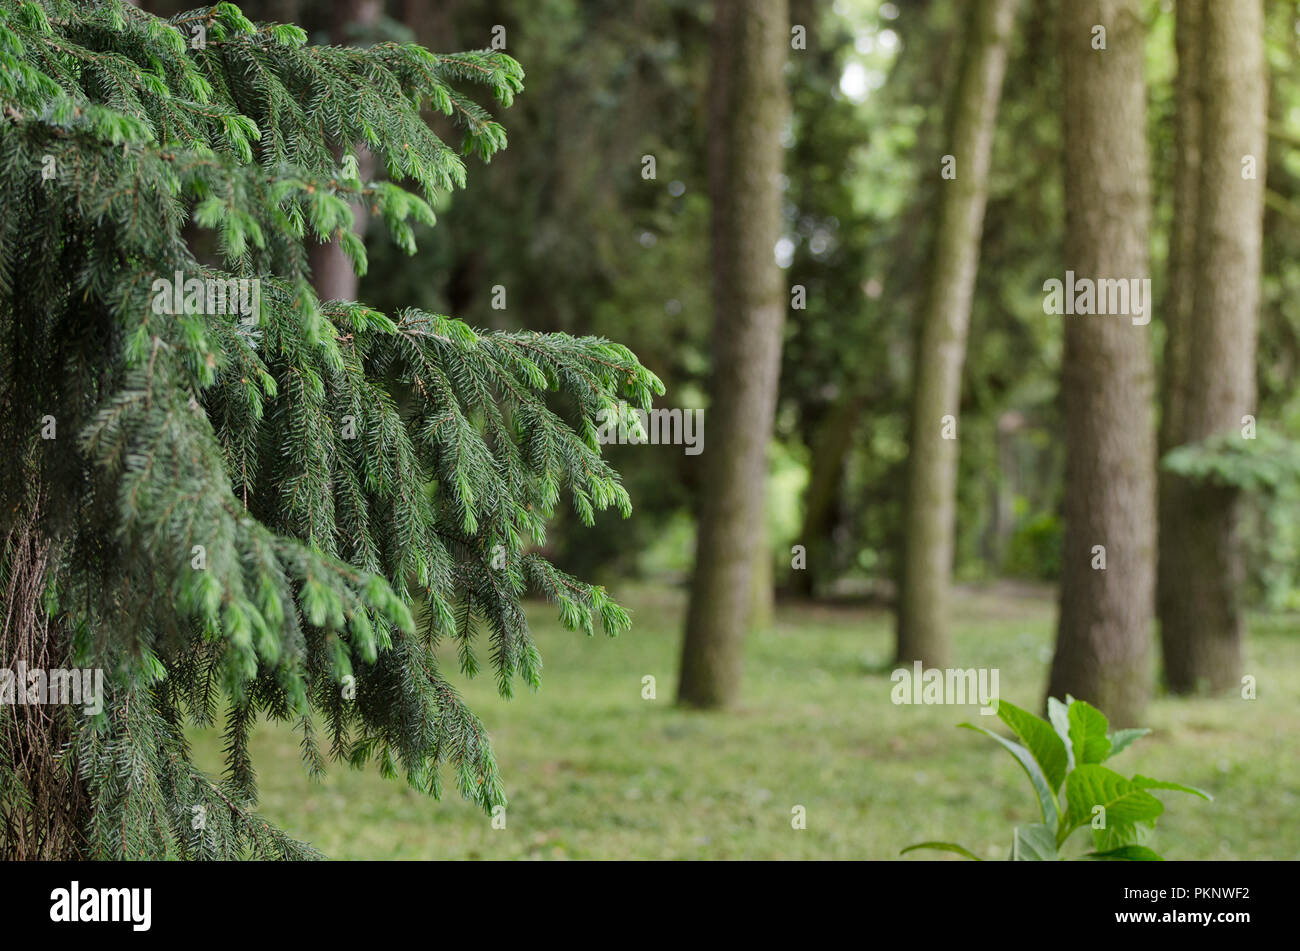 Fir tree branch close-up against a spruce forest, background of straight trunks of spruces. Green natural background. - Stock Image